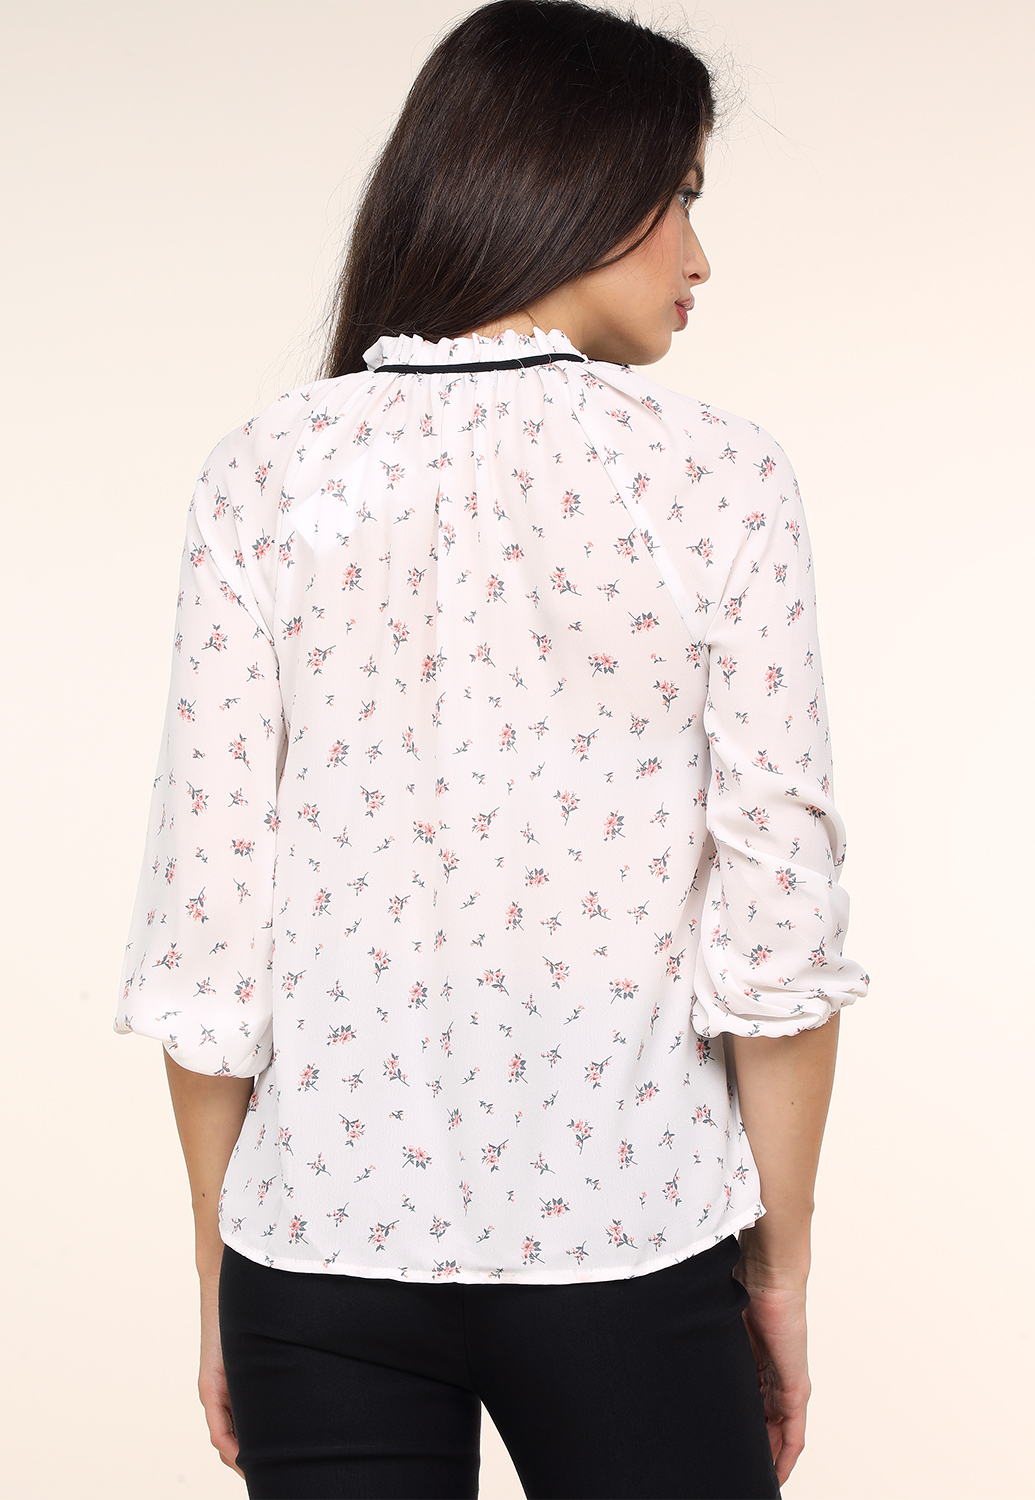 Floral Neck Time Dressy Blouse